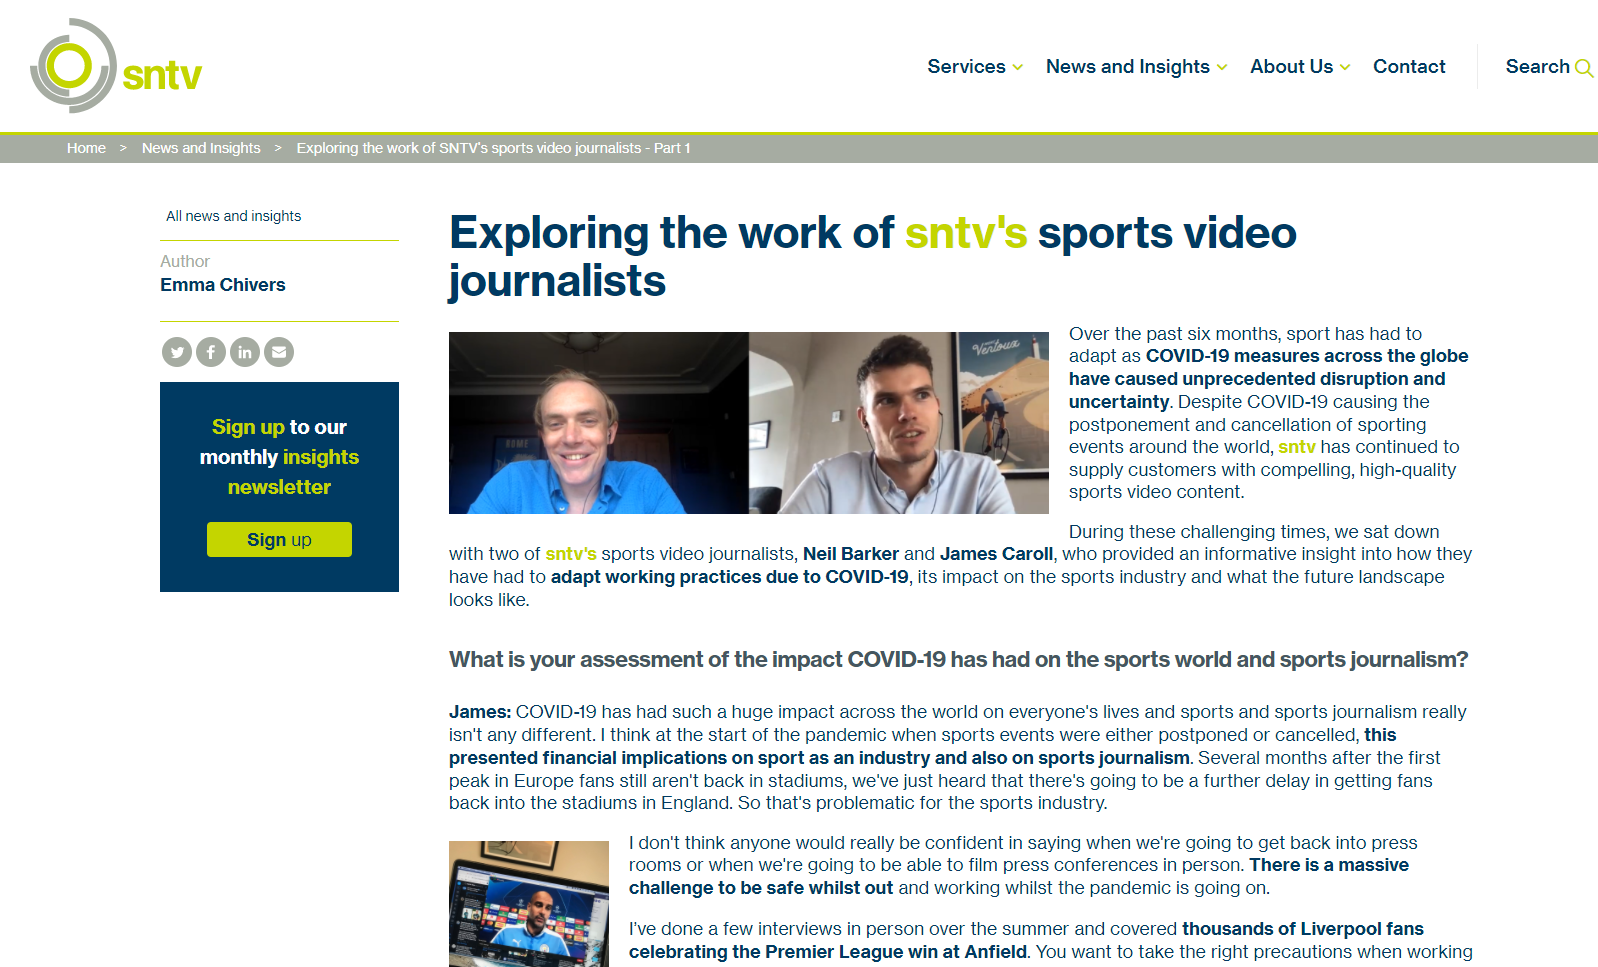 Exploring the work of sntv's sports video journalists